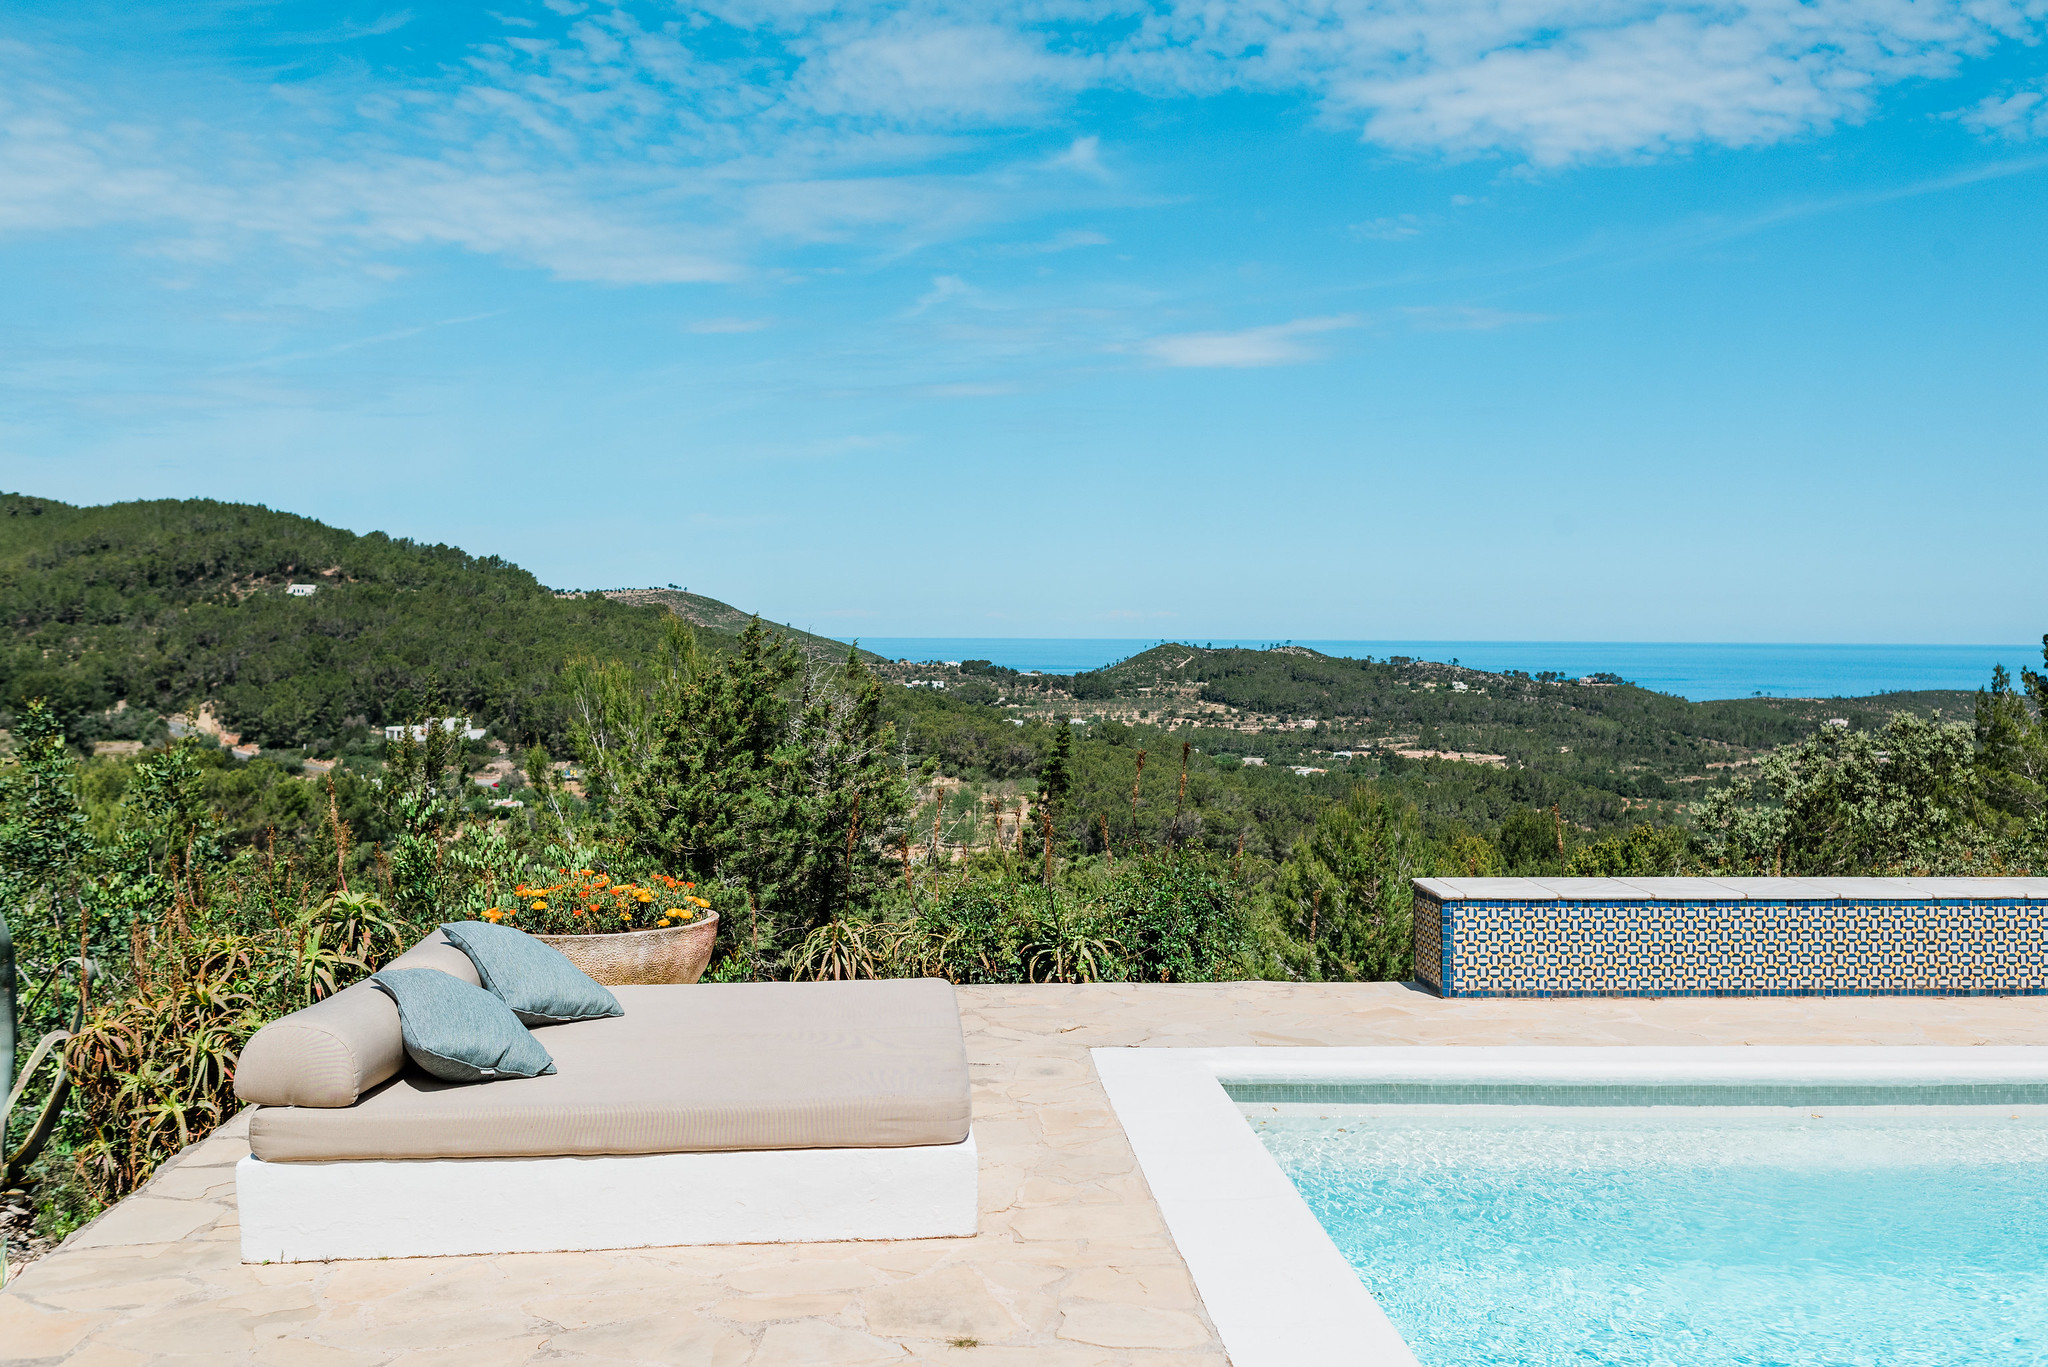 https://www.white-ibiza.com/wp-content/uploads/2020/06/white-ibiza-villas-can-calma-exterior-view-from-pool.jpg